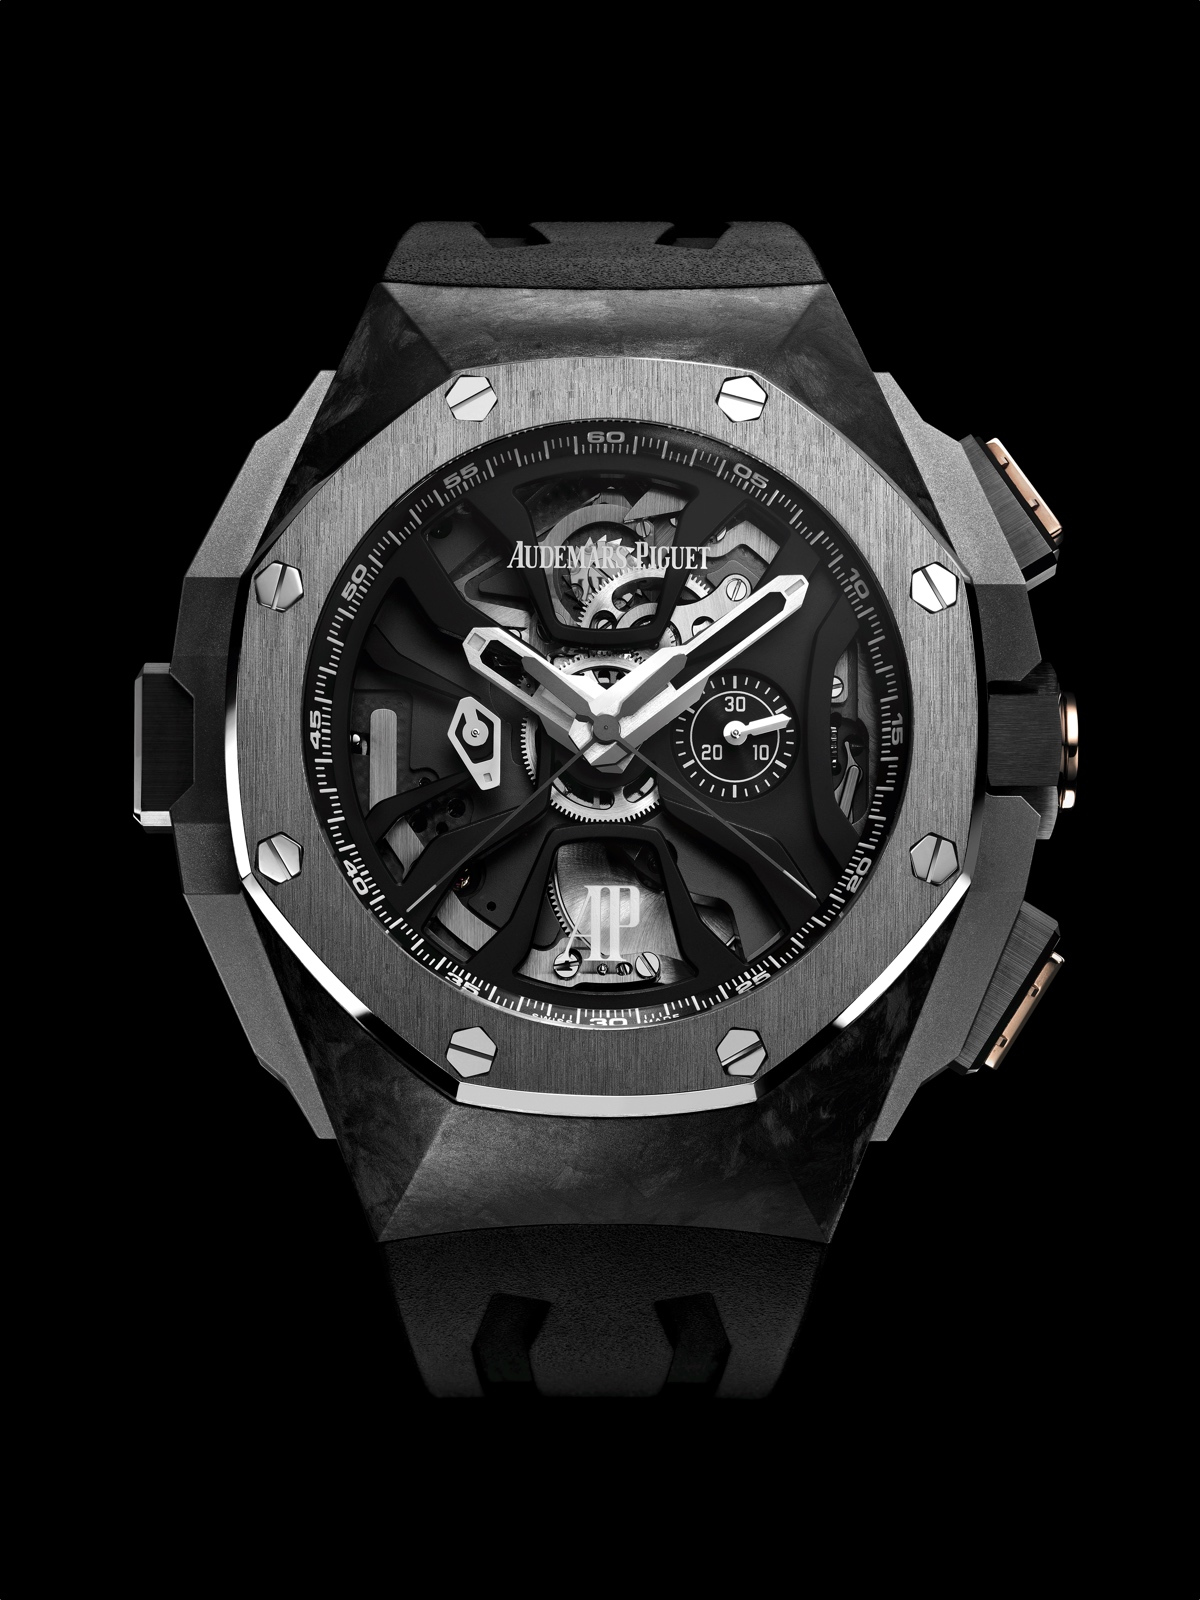 Audemars Piguet Royal Oak Concept Schumacher esfera